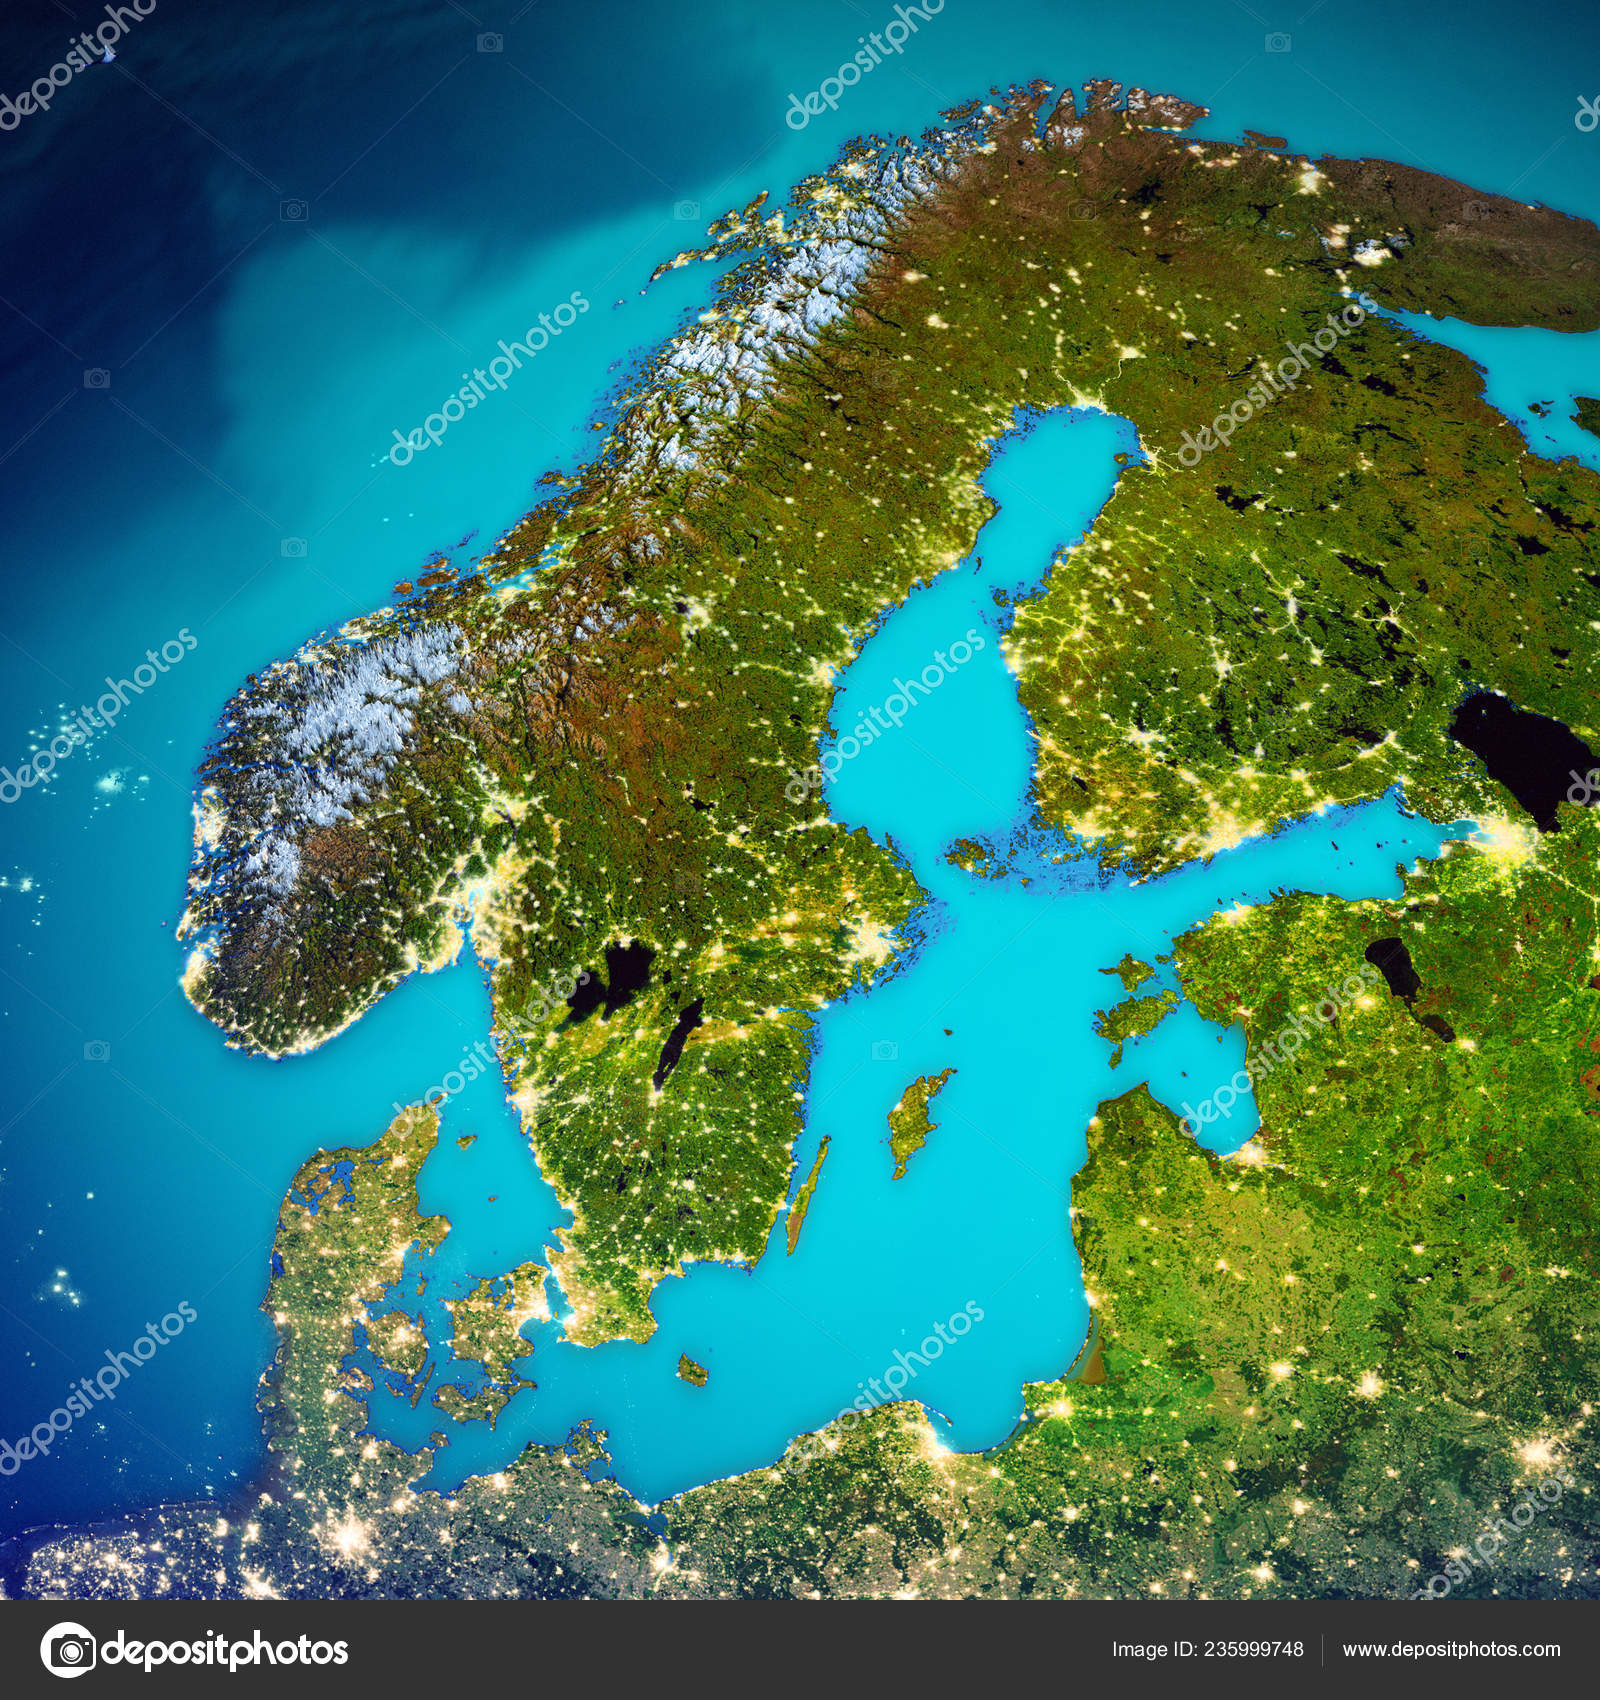 Scandinavia space map — Stock Photo © 1xpert #235999748 on europe map, italy map, greece map, britain map, scotland map, austria map, france map, united kingdom map, danube river map, africa map, netherlands map, mediterranean map, portugal map, germany map, tourist map, sweden map, iberian peninsula map, iceland map, switzerland map, scandinavian peninsula map, rhine river map, ural mountains map, england map, america map, ireland map, turkey map, denmark map, strait of gibraltar map, belgium map, norway map, finland map, spain map, uk map, viking map, nordic countries map, the netherlands map,